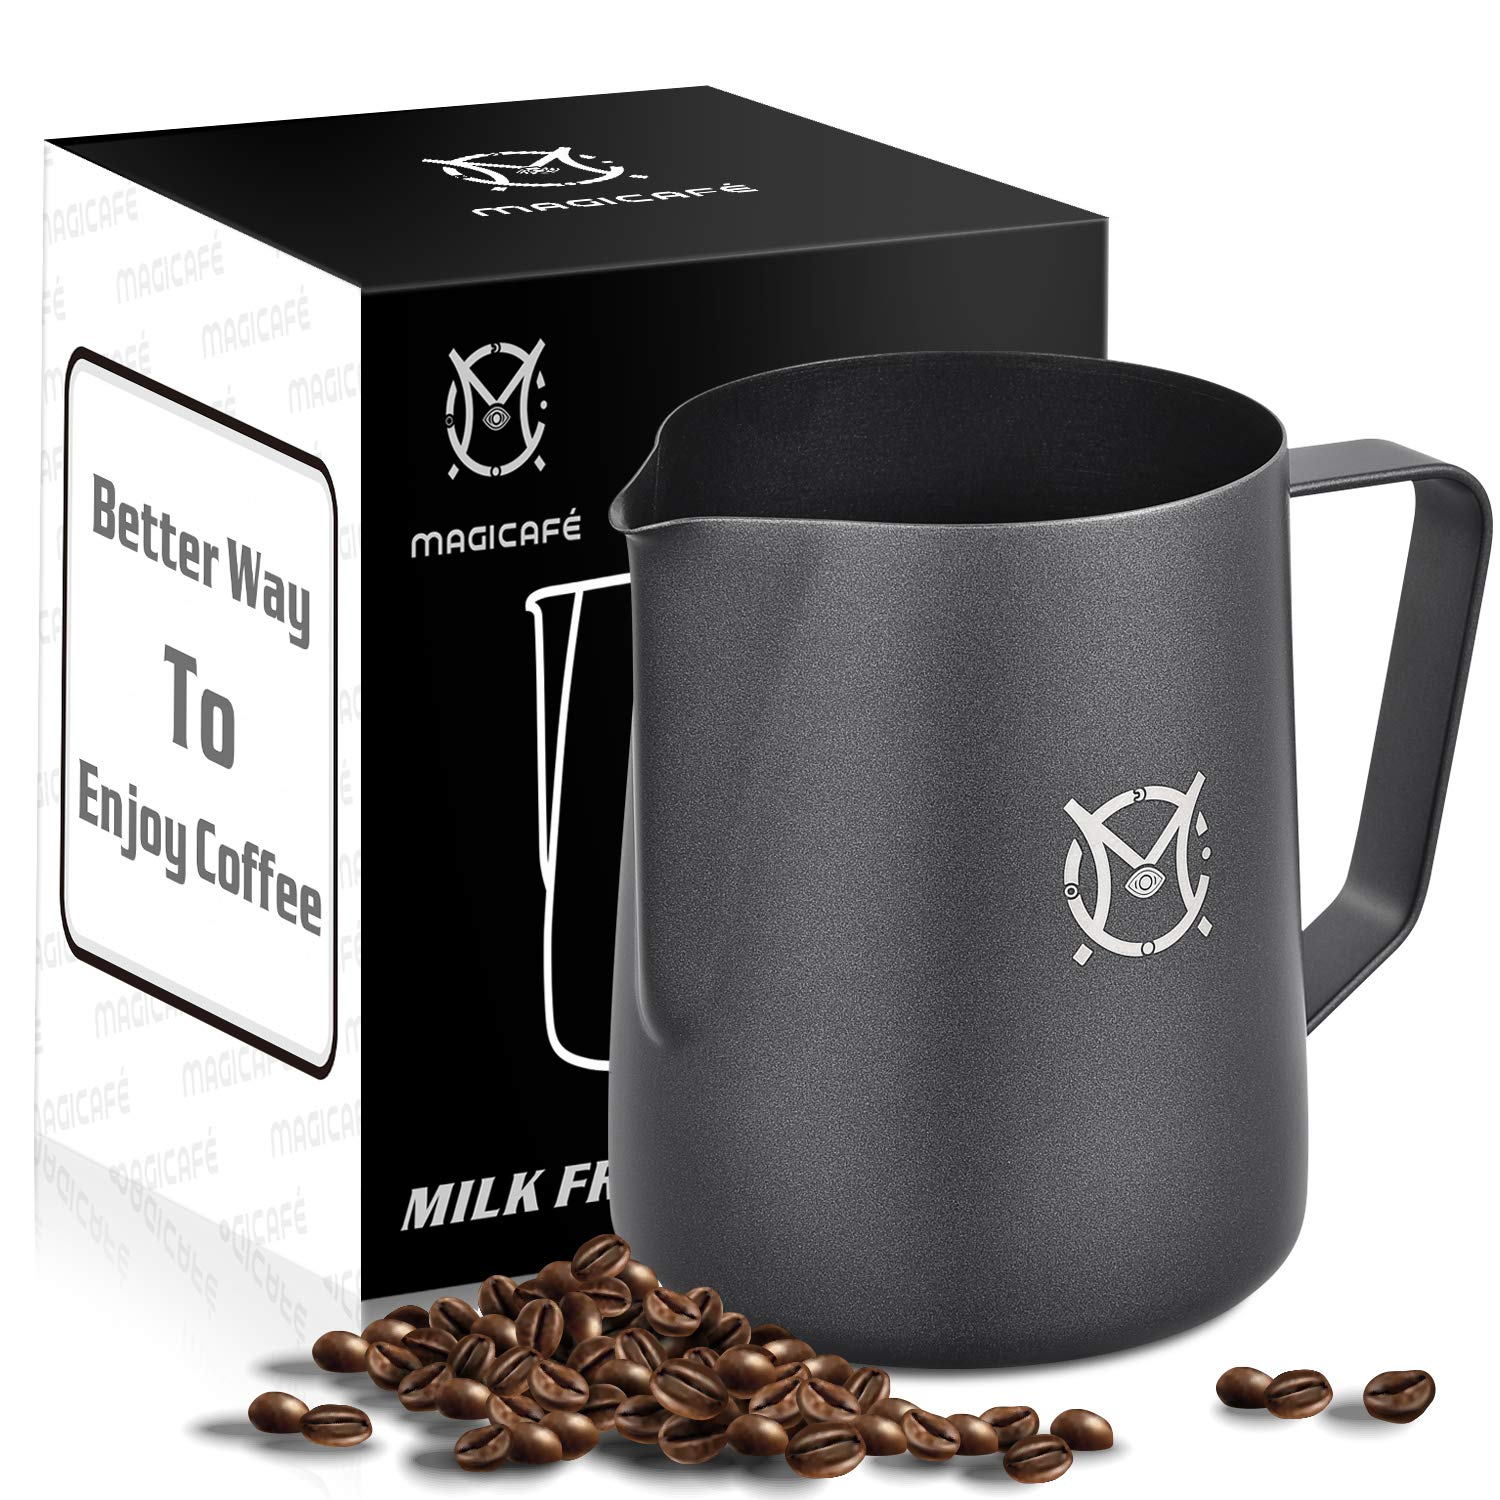 Magicafé Milk Frothing Frother Pitcher - Non Stick Coating Latte Art Espresso Cappuccino Metal Milk Steaming Pitcher Black 20oz/600ml by Magicafé